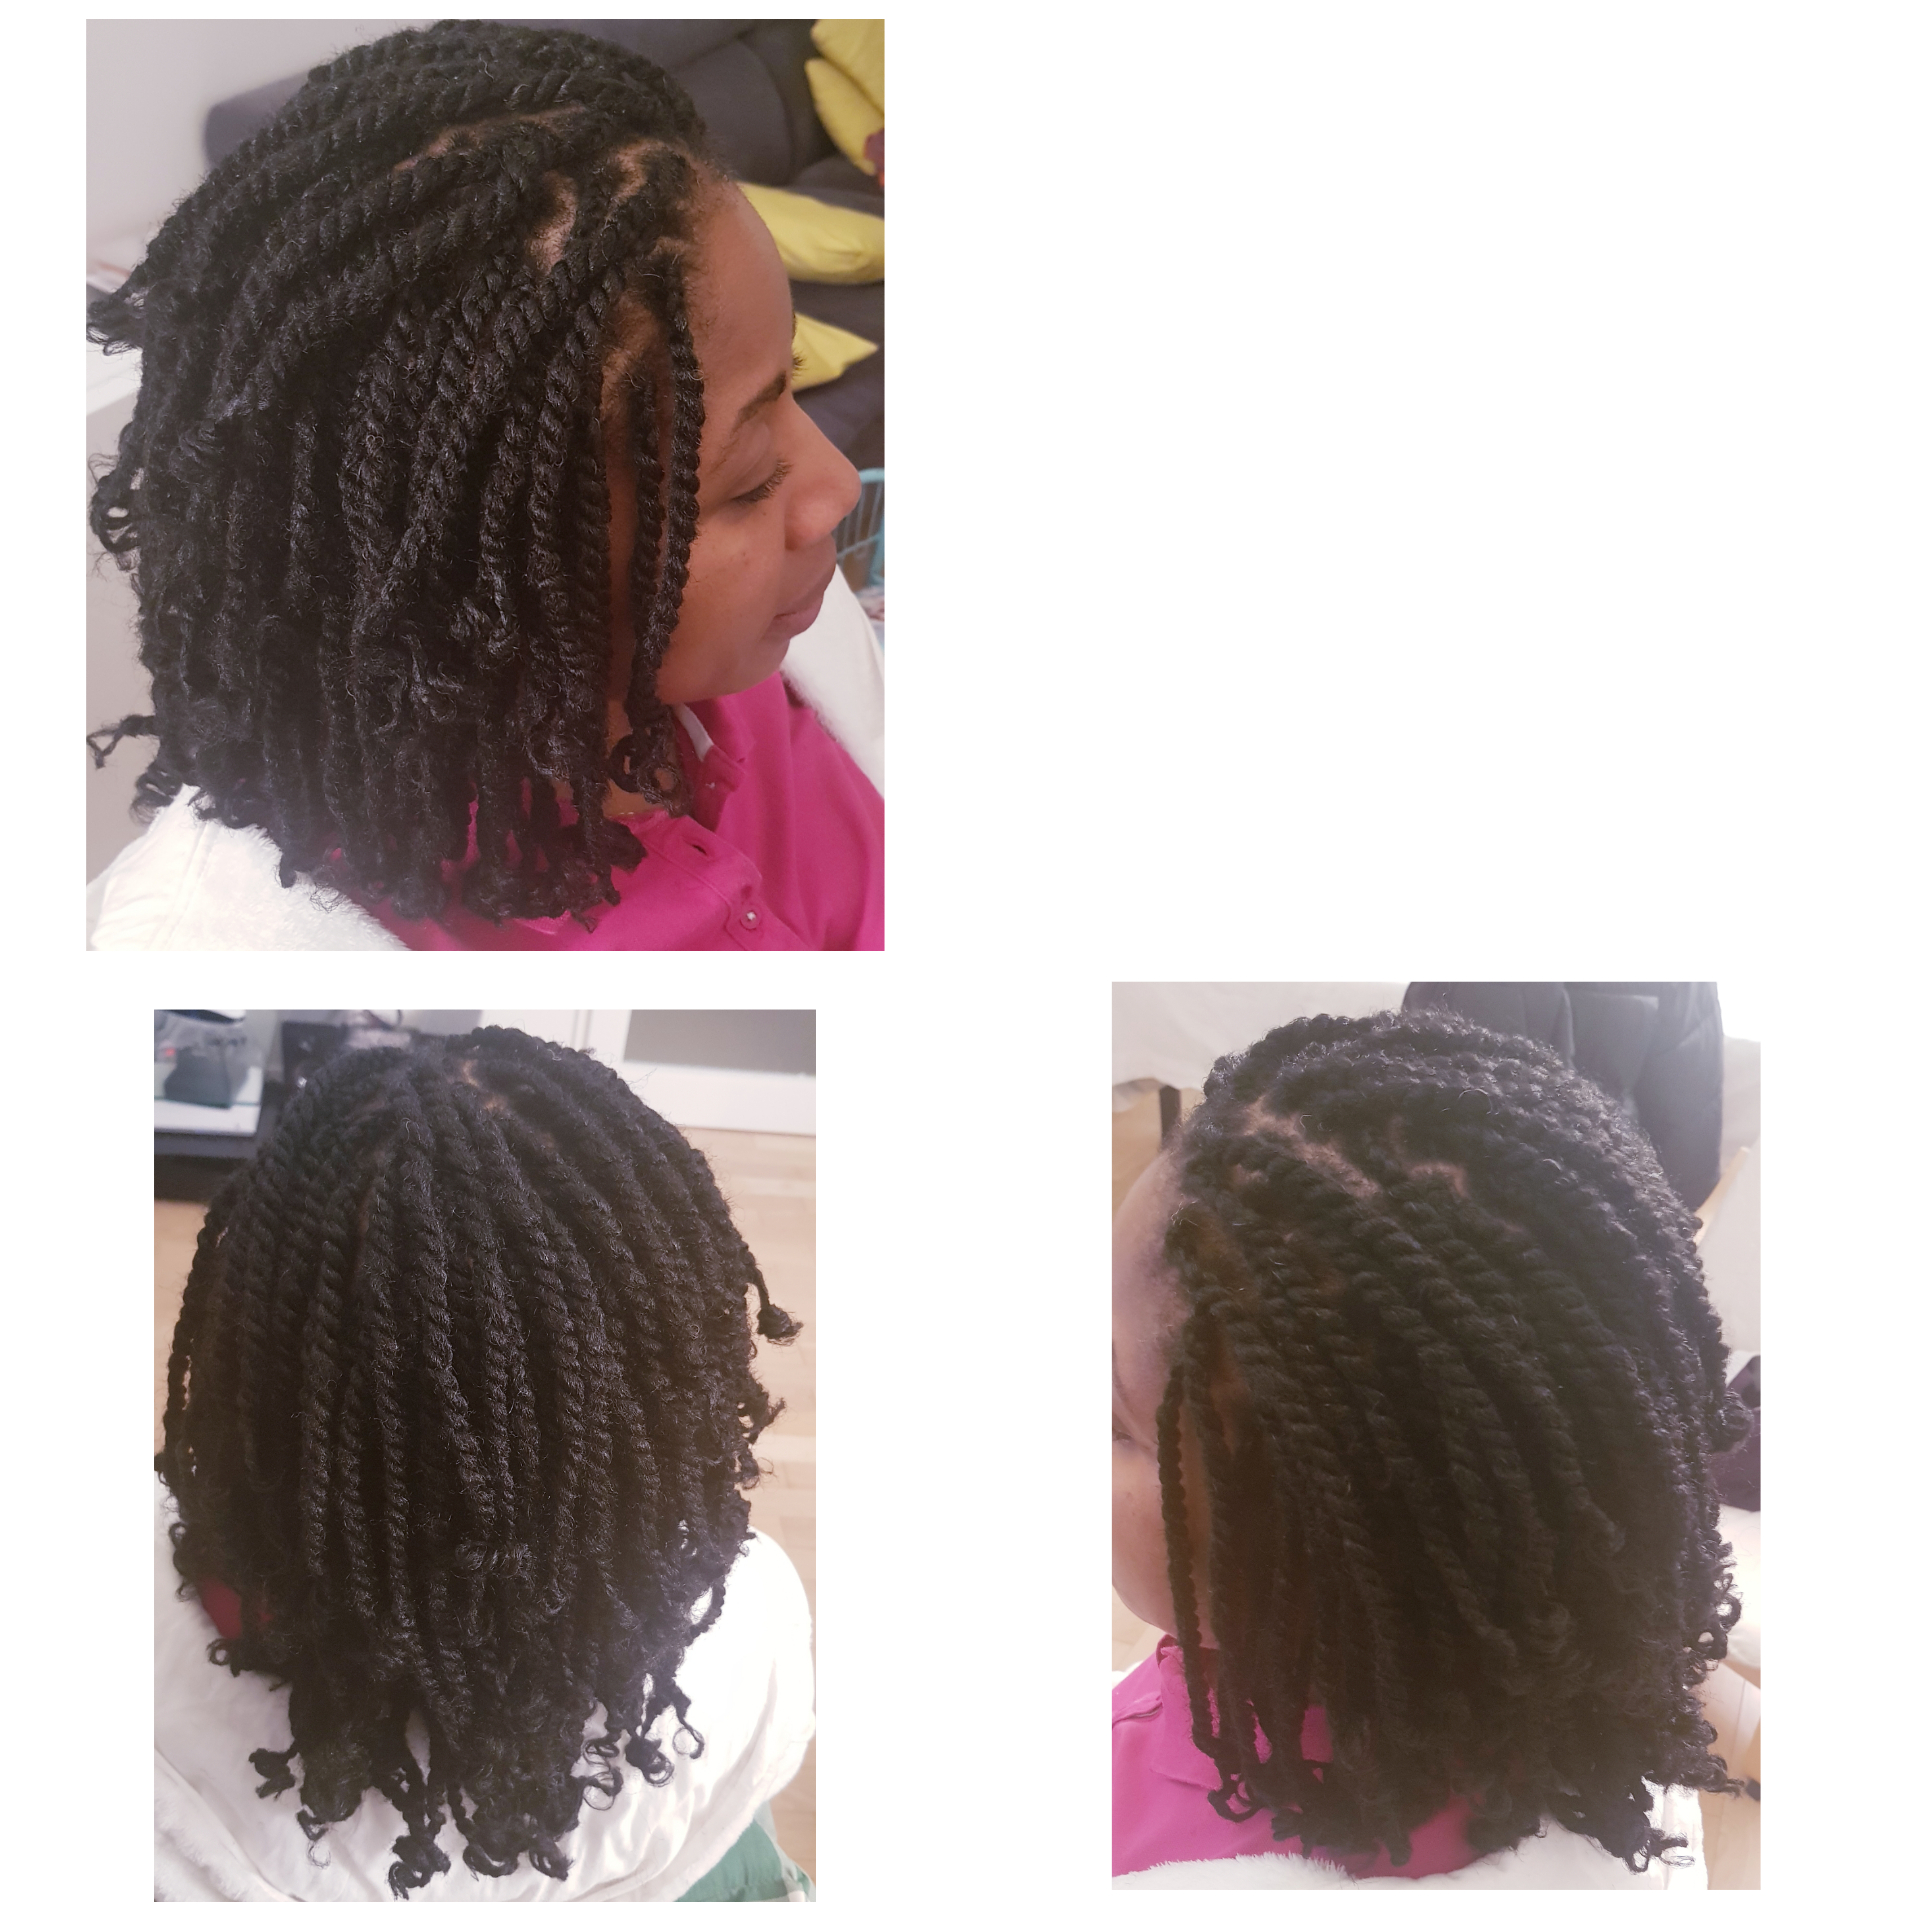 salon de coiffure afro tresse tresses box braids crochet braids vanilles tissages paris 75 77 78 91 92 93 94 95 LNBUBXDM